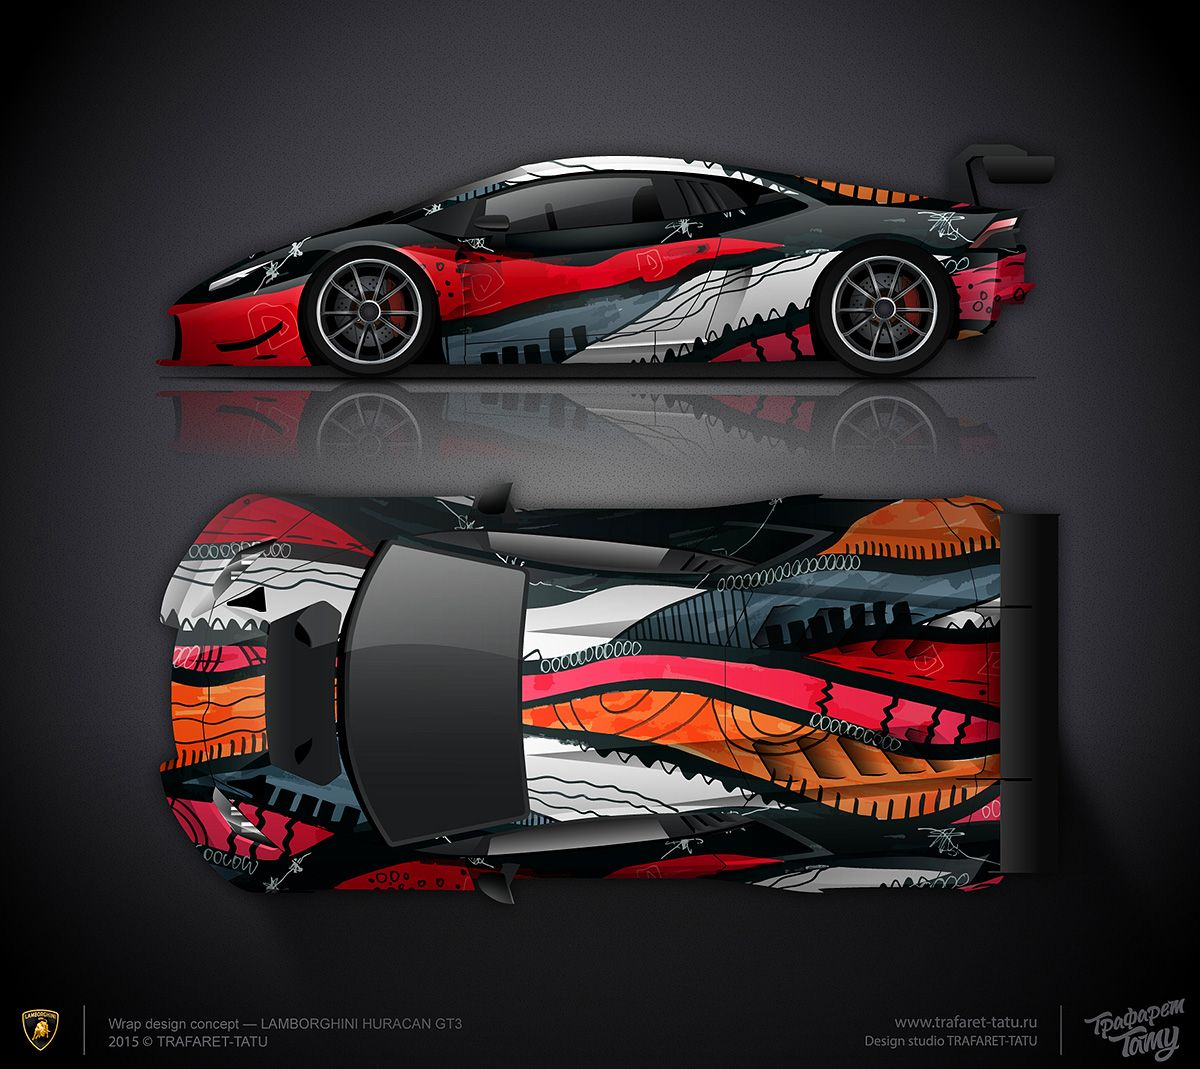 wrap design concept 2 artcar lamborghini huracan gt3 car wrap design pinterest autos und. Black Bedroom Furniture Sets. Home Design Ideas